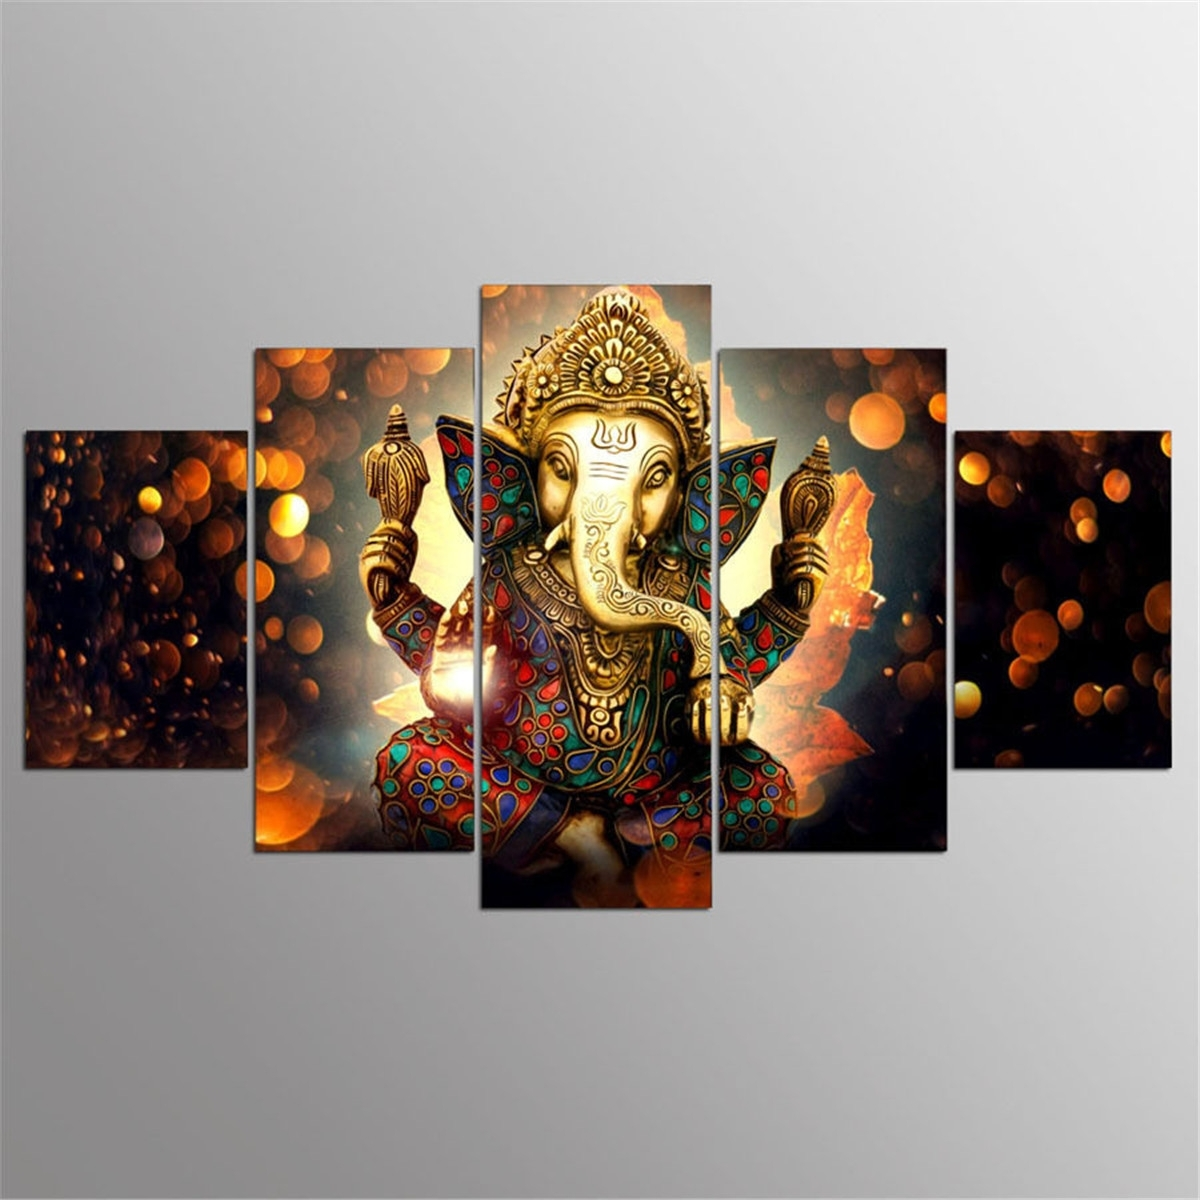 5Pcs Ganesha India Canvas Painting Print Modern Wall Art Poster Within Most Current India Canvas Wall Art (View 3 of 15)